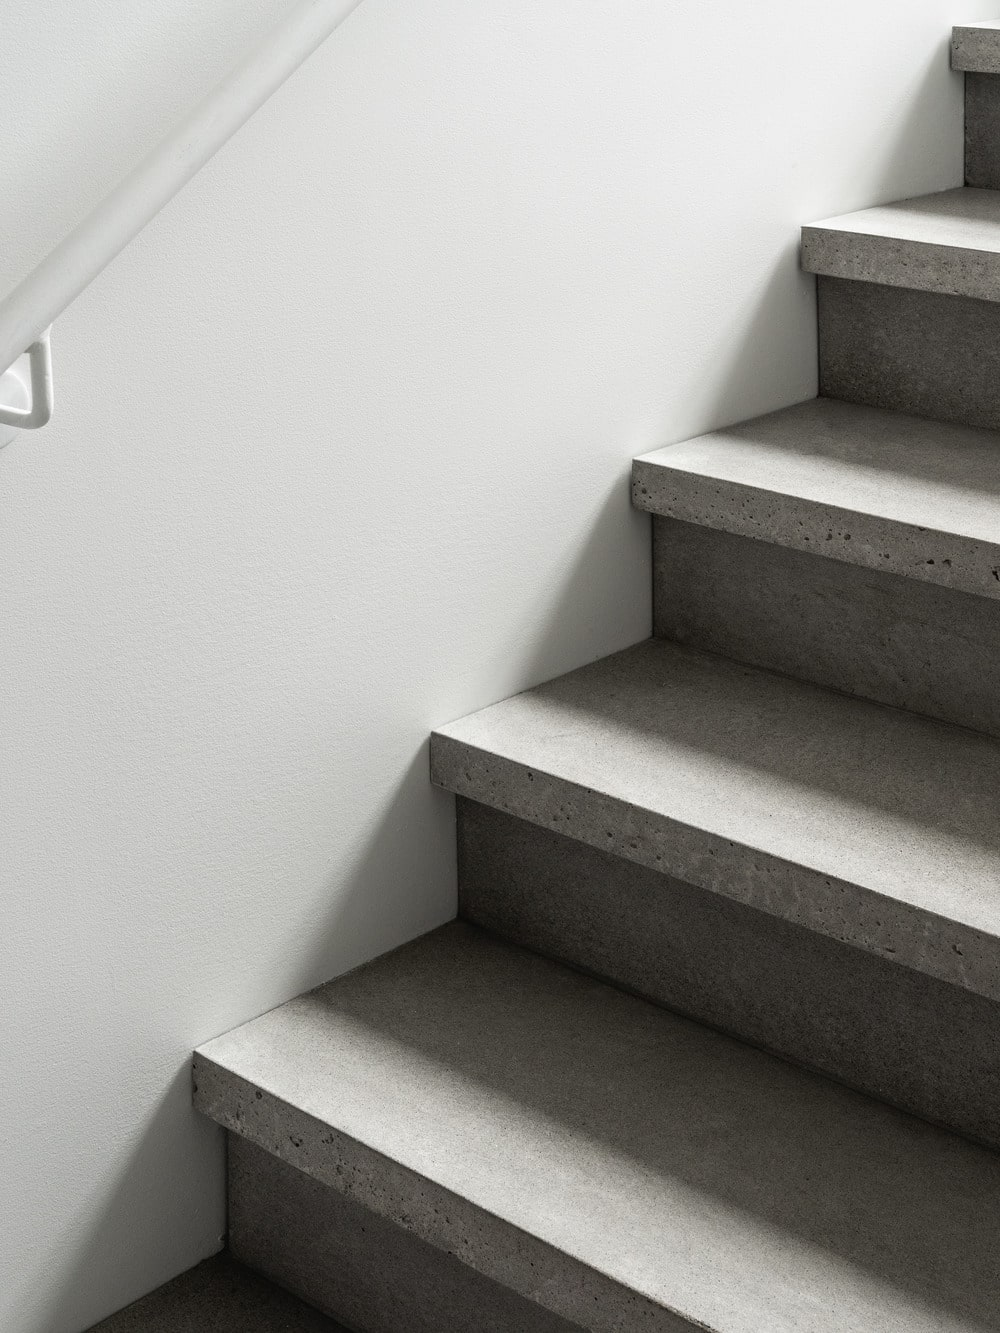 This is a closer look at the concrete steps of the stairs contrasted by the bright walls.